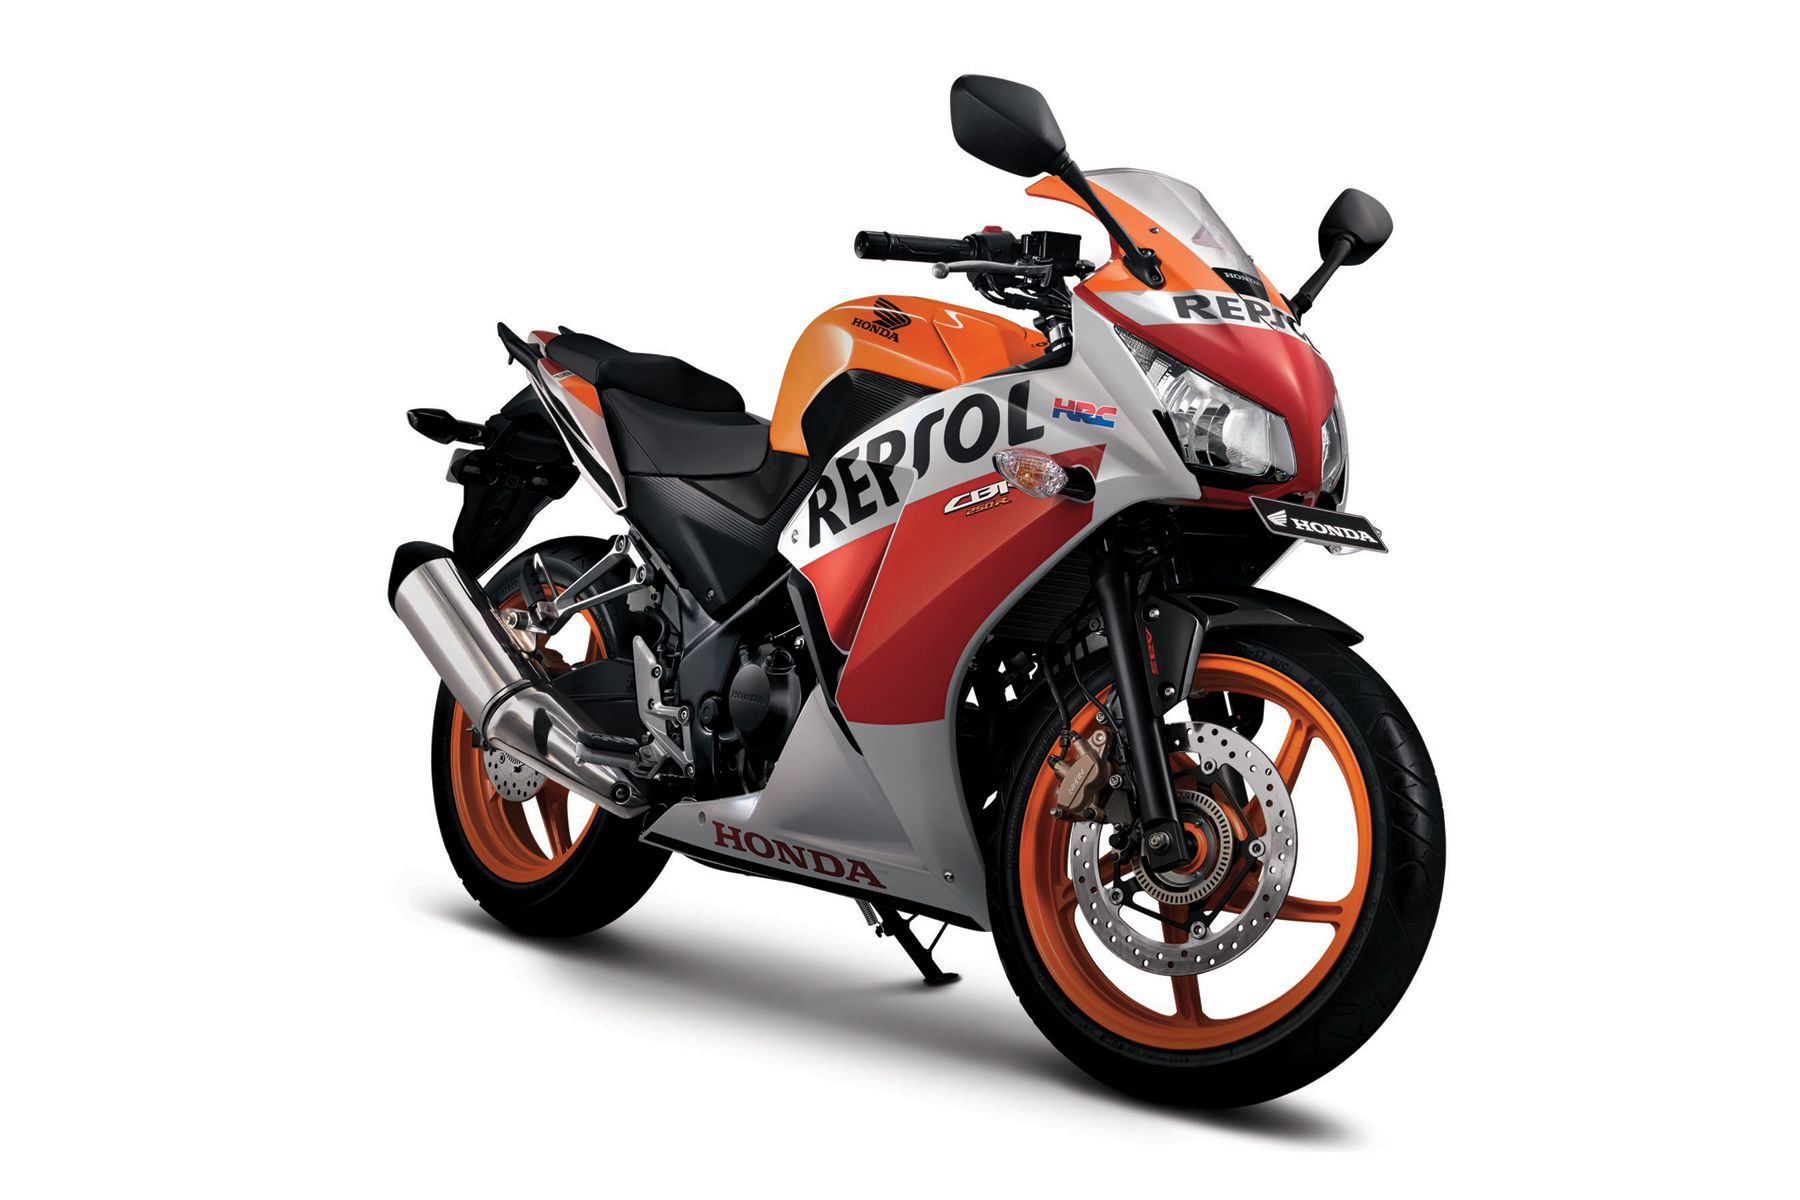 new 2015 honda cbr250r launched with more power amp twin headlamps in indonesia